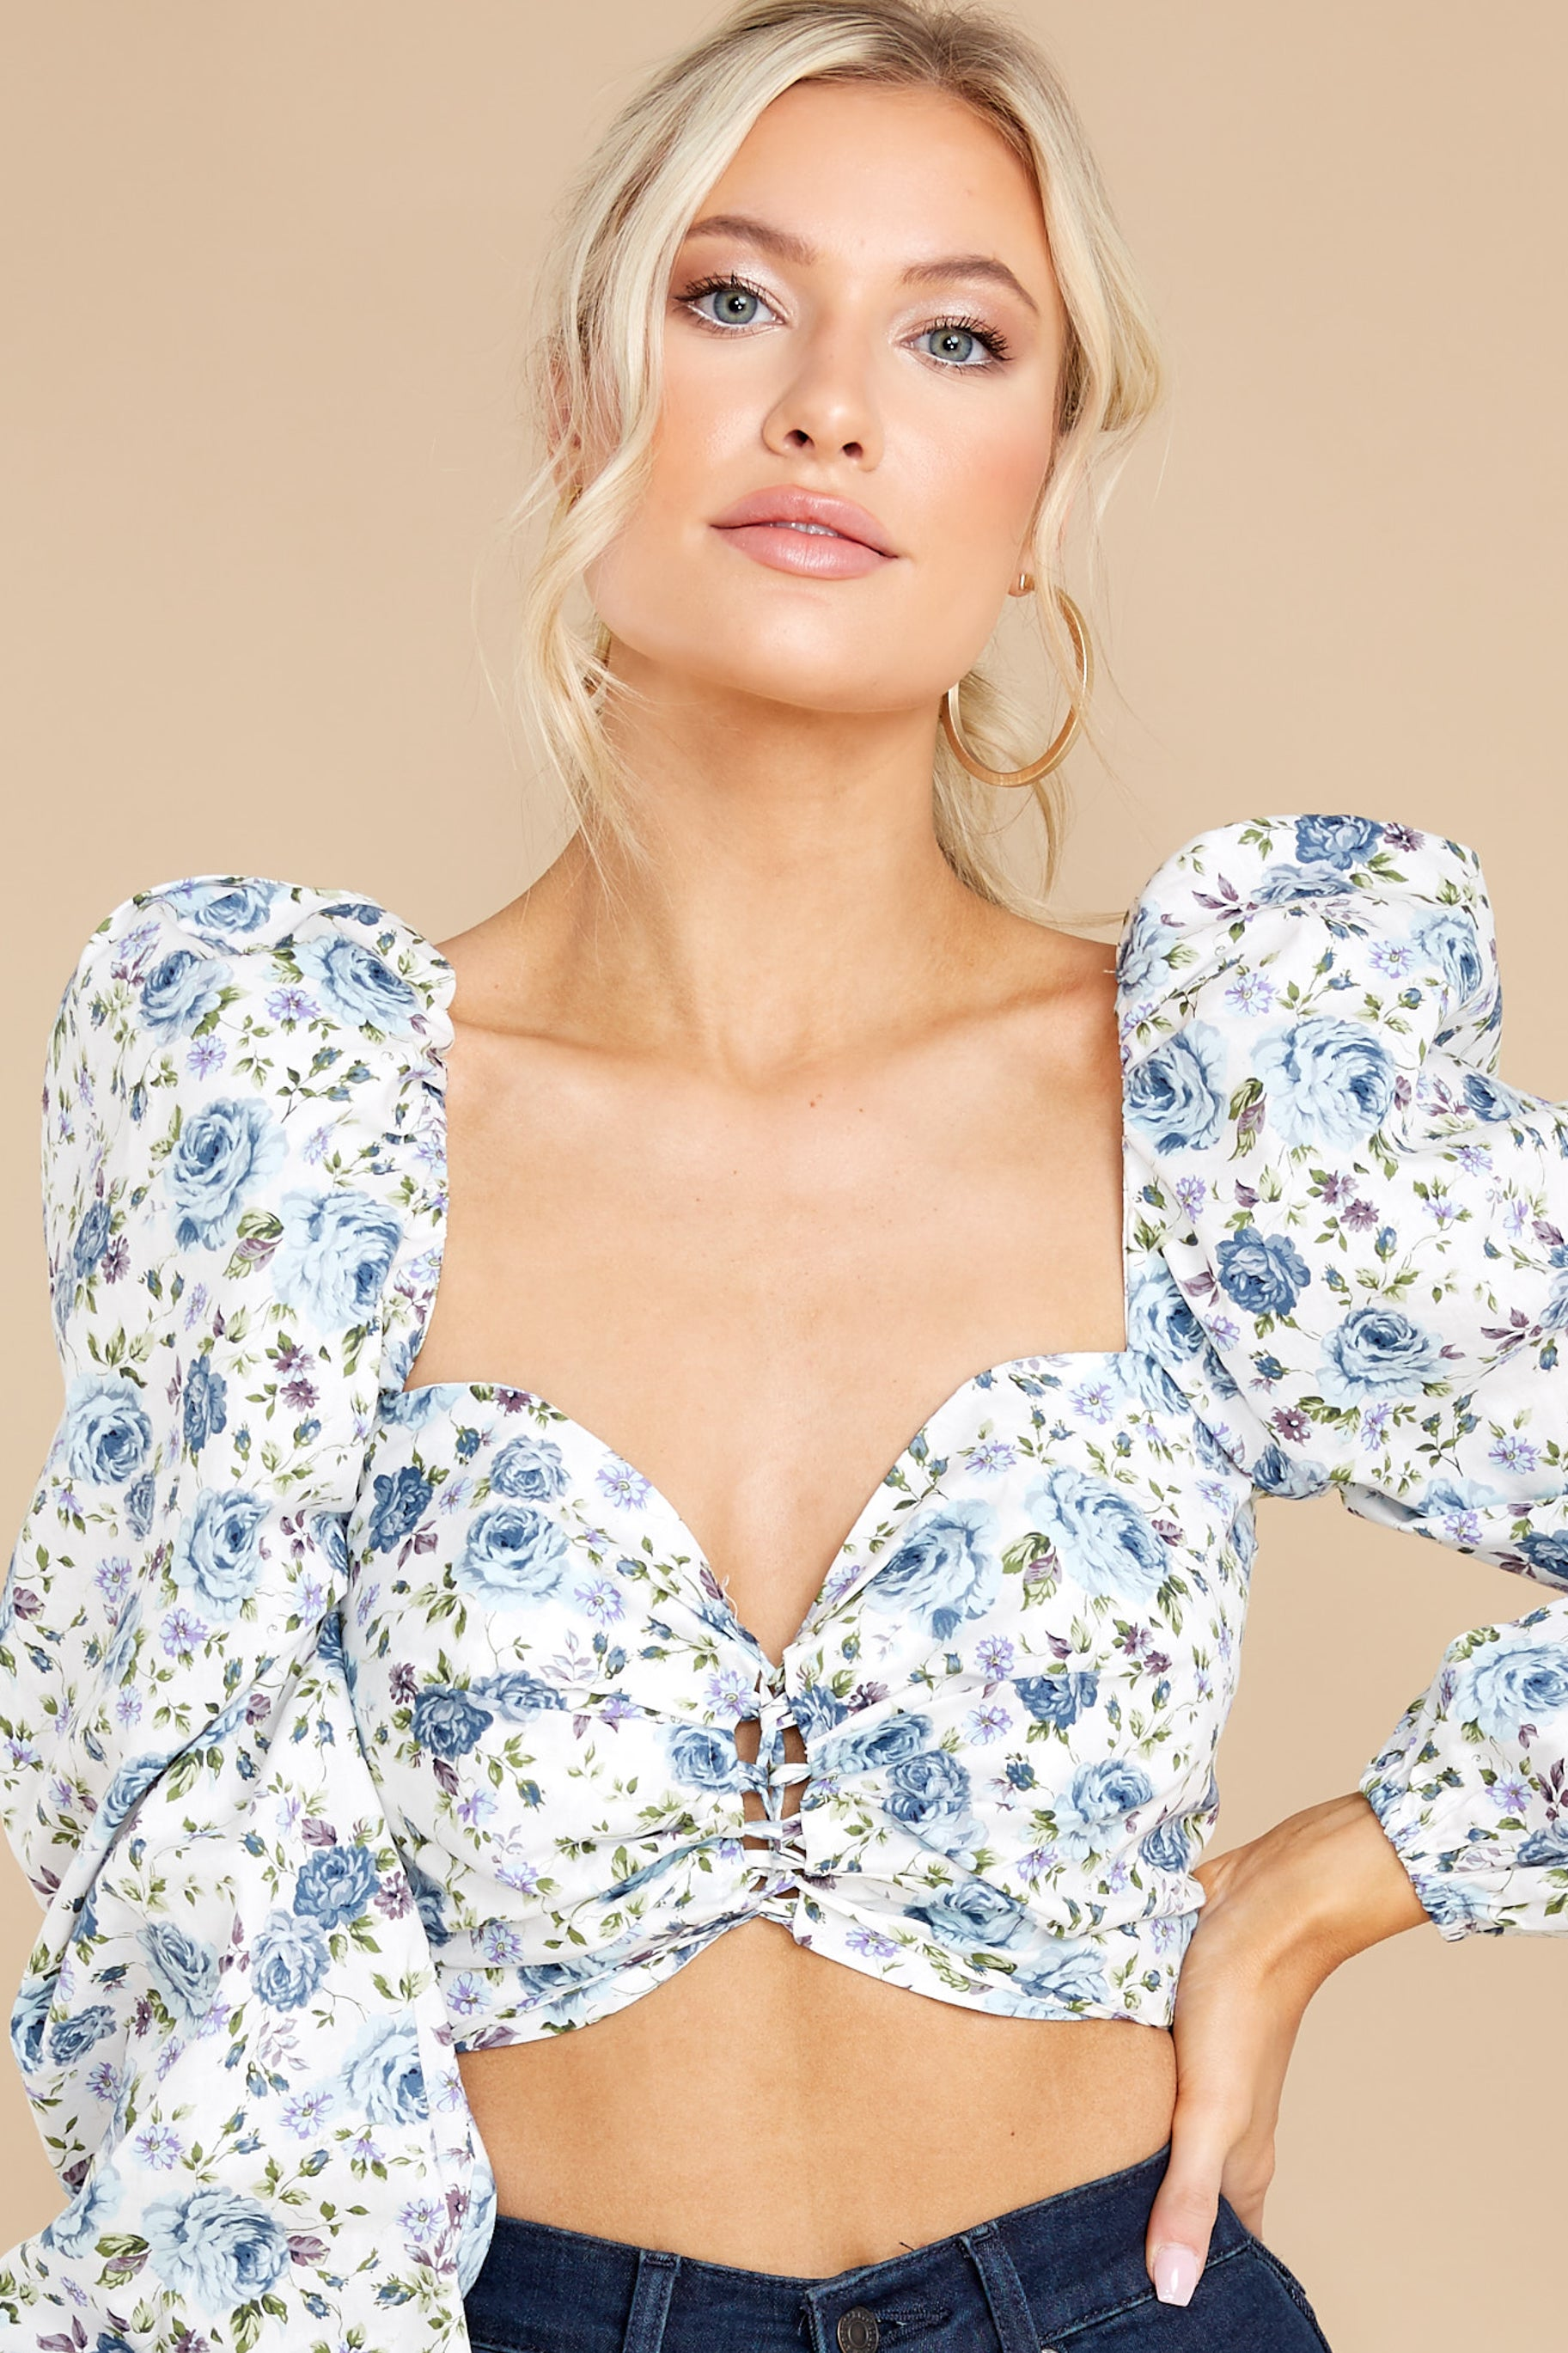 6 Fields Of Love White And Blue Floral Print Crop Top at reddress.com